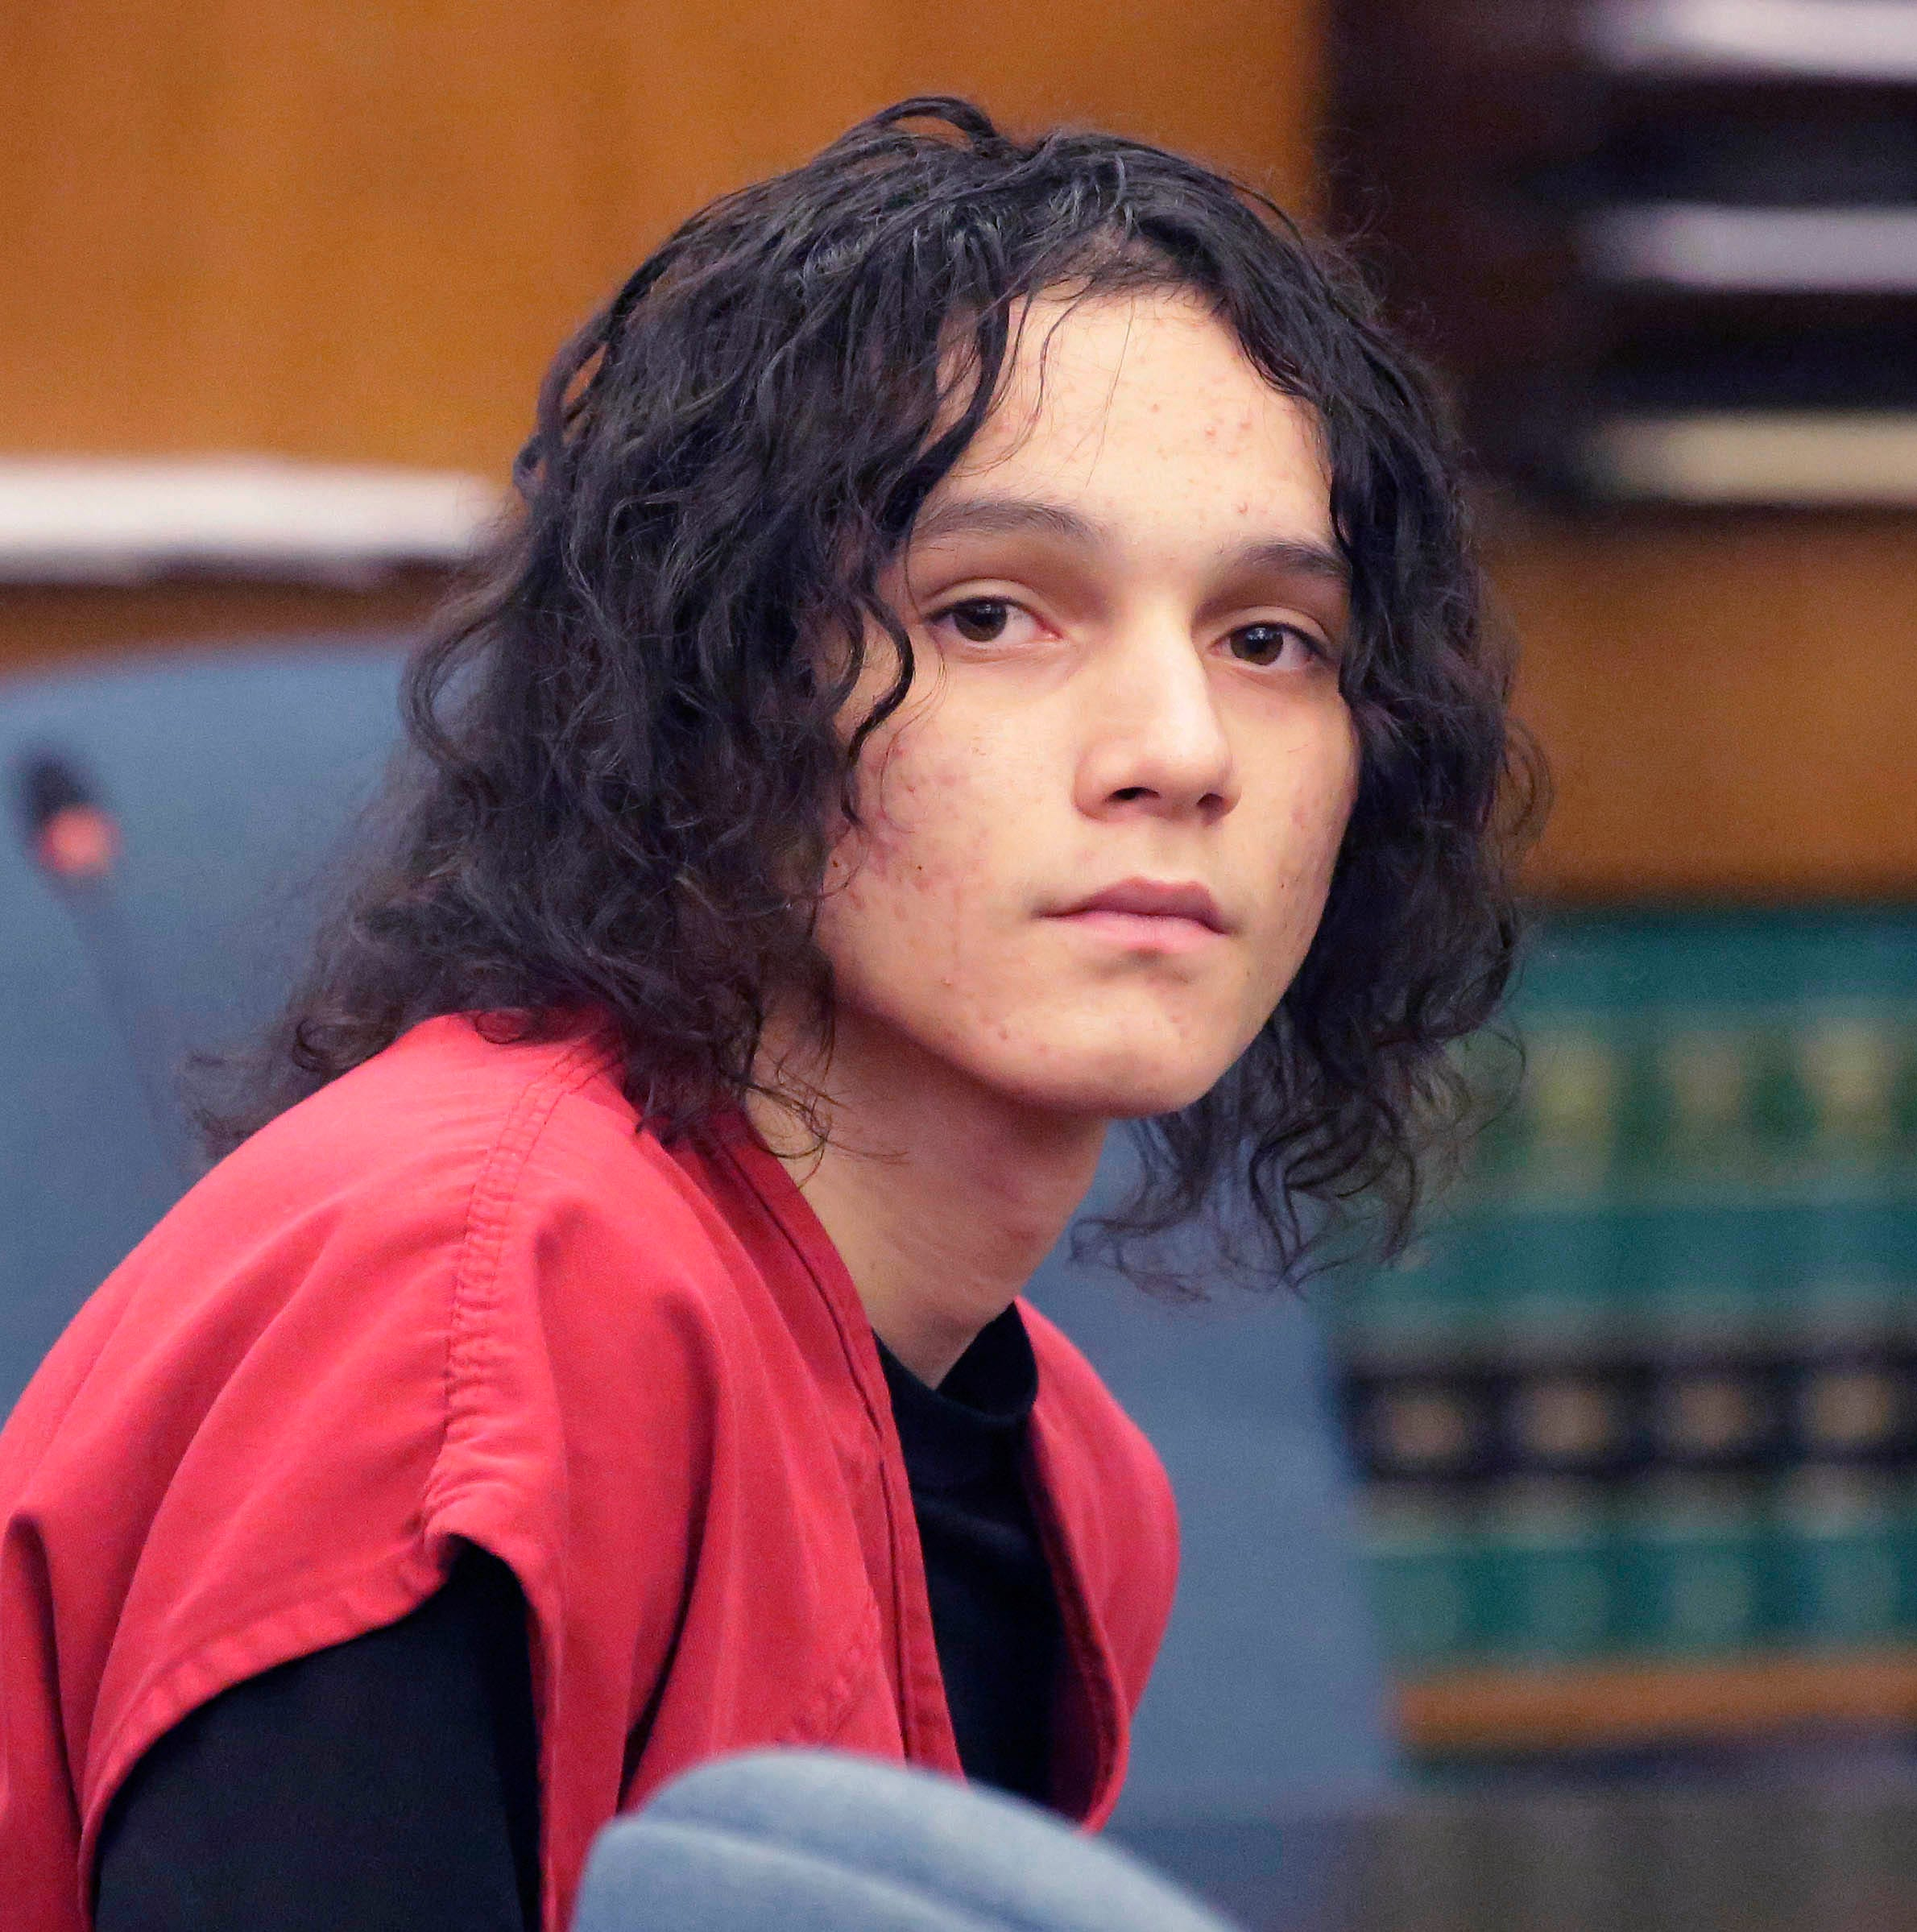 Sheboygan teen sentenced to 1 1/2 years, extended supervision in hidden corpse case